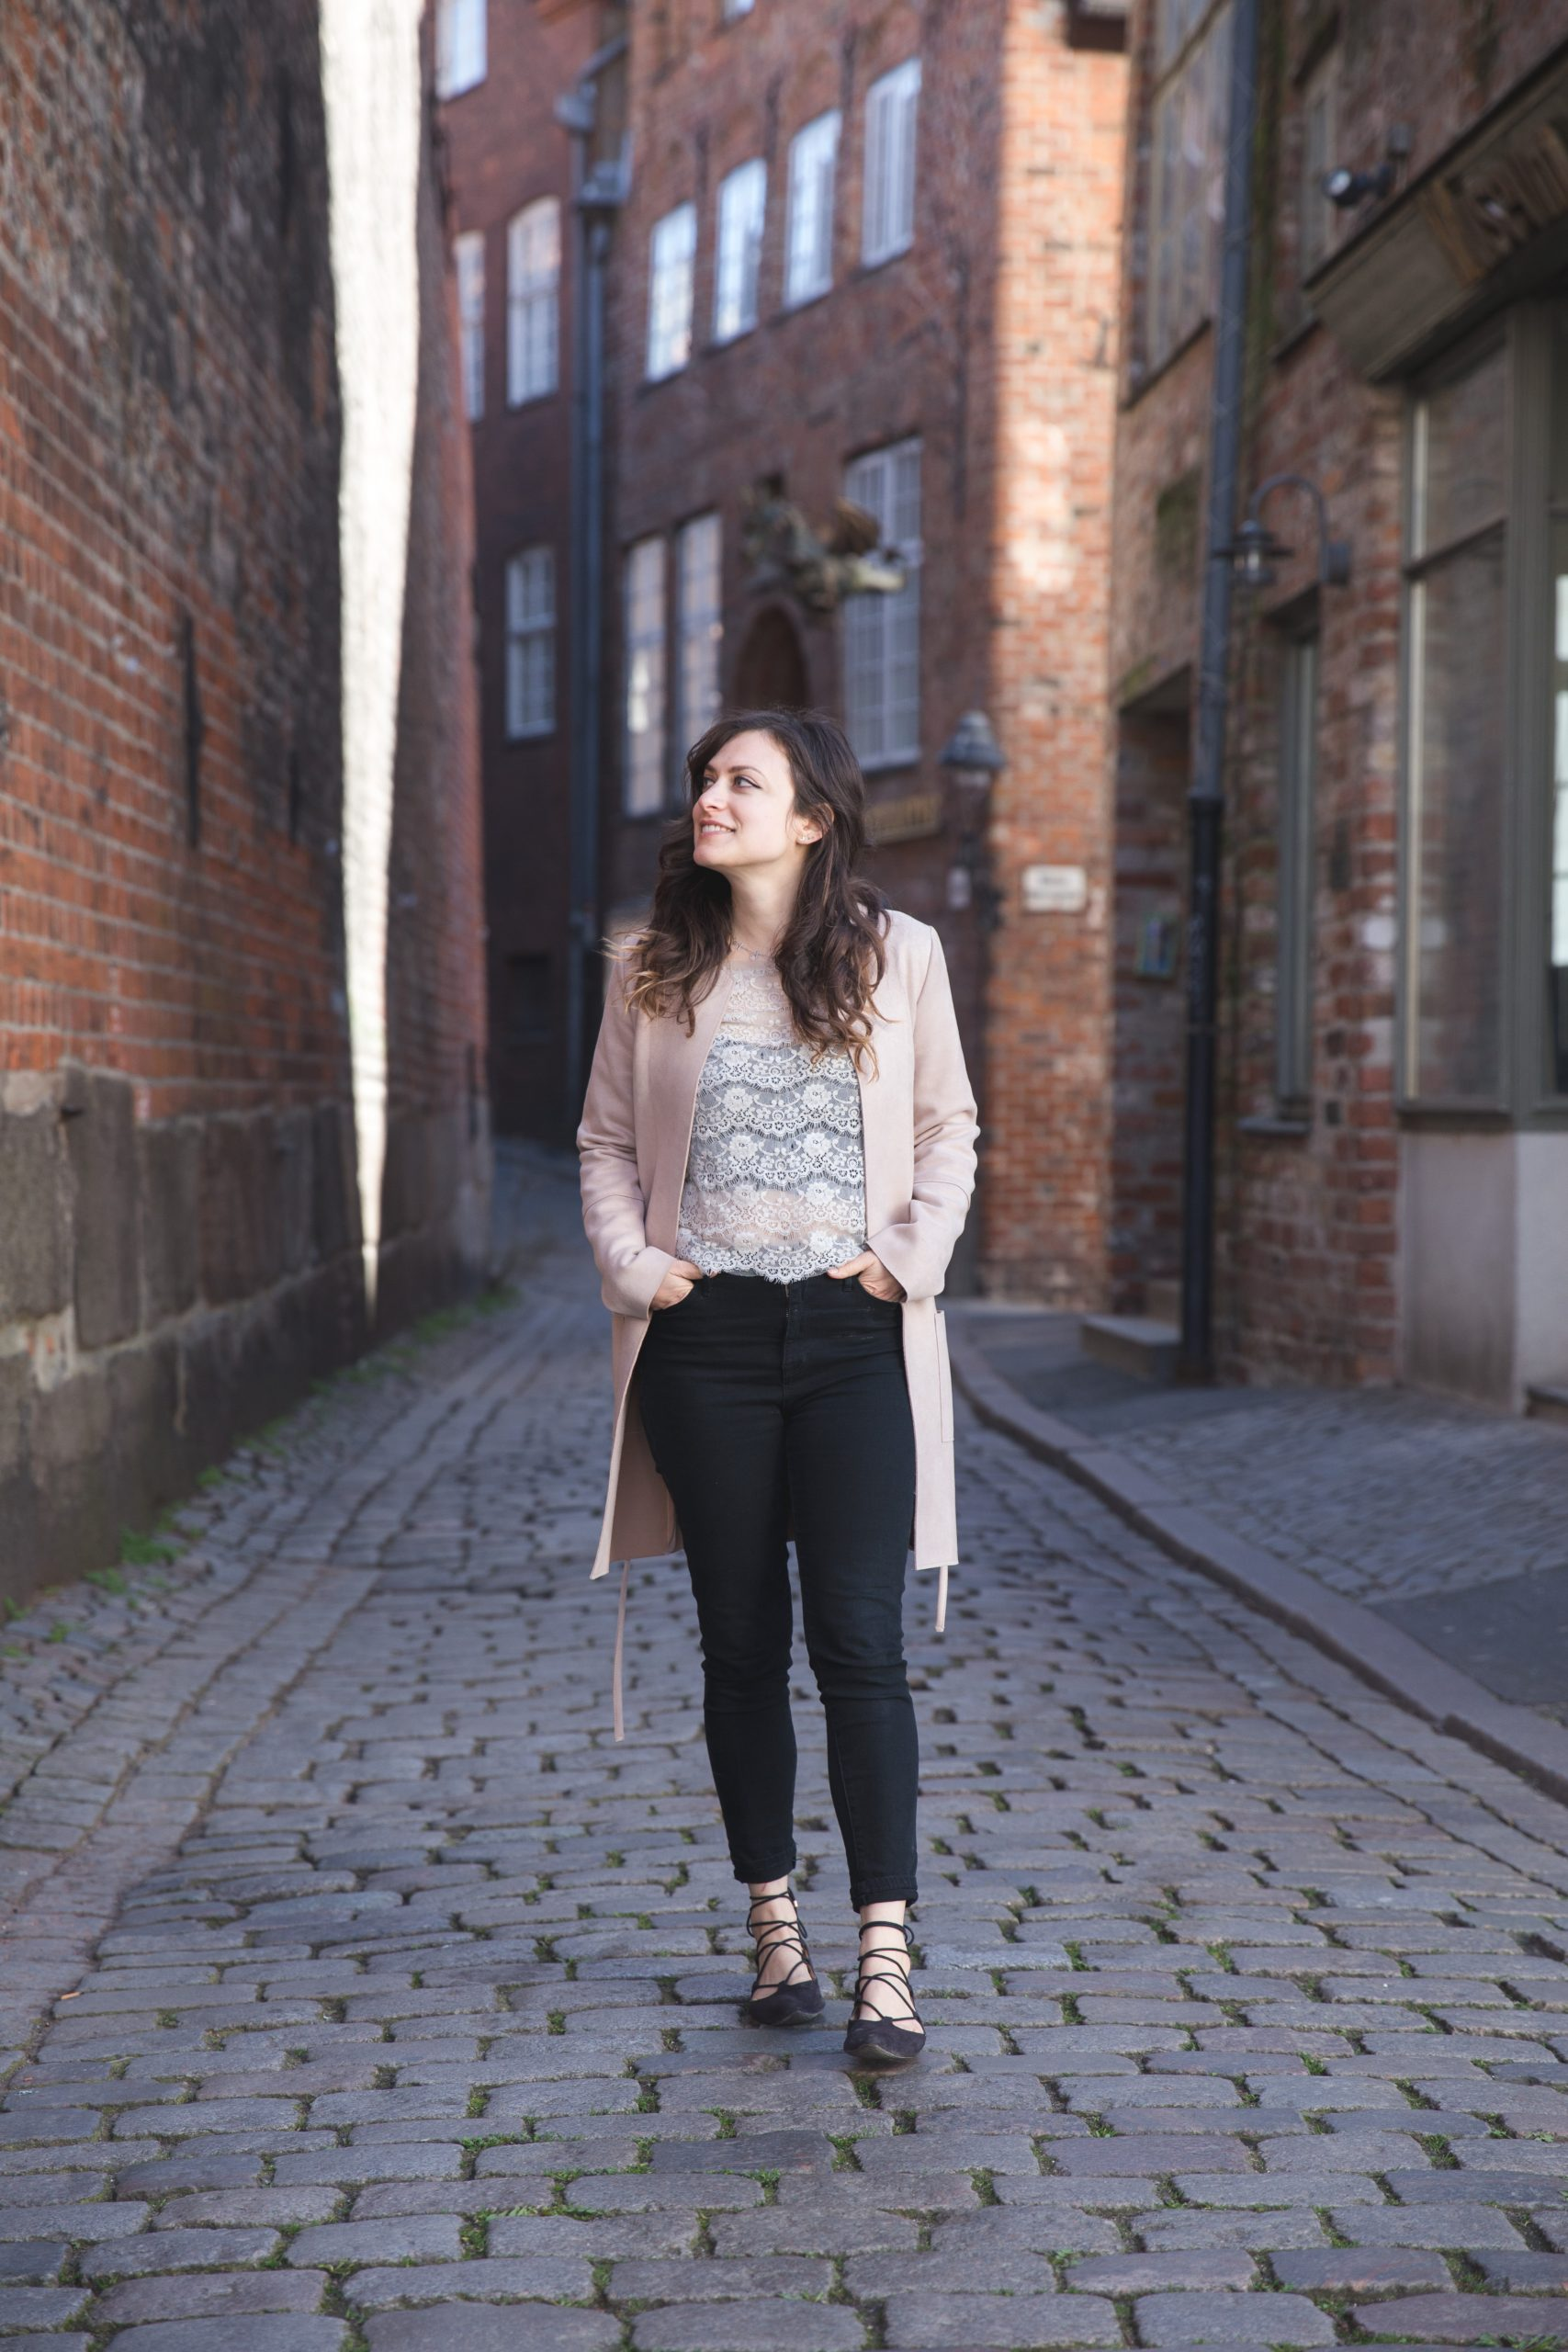 Kelsey Alone in Lübeck, Germany on a cobblestone street surrounded by brick buildings